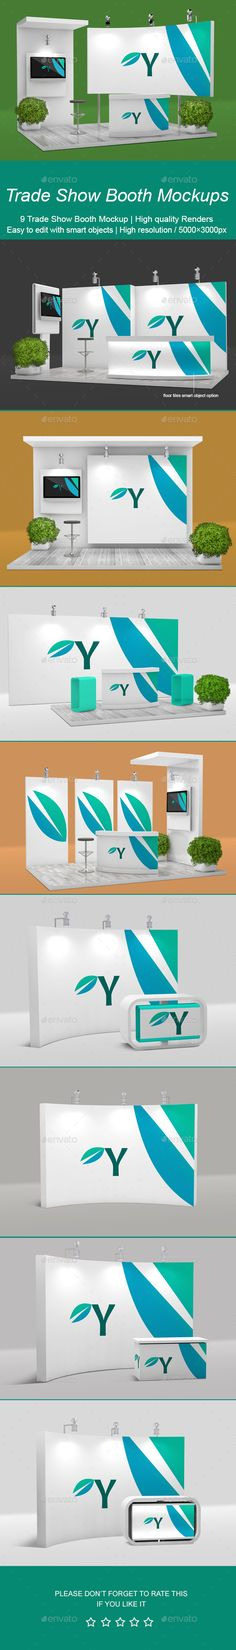 Trade Show Booth Mockup #design Download: http://graphicriver.net/item/trade-show-booth-mockup-/11727039?ref=ksioks